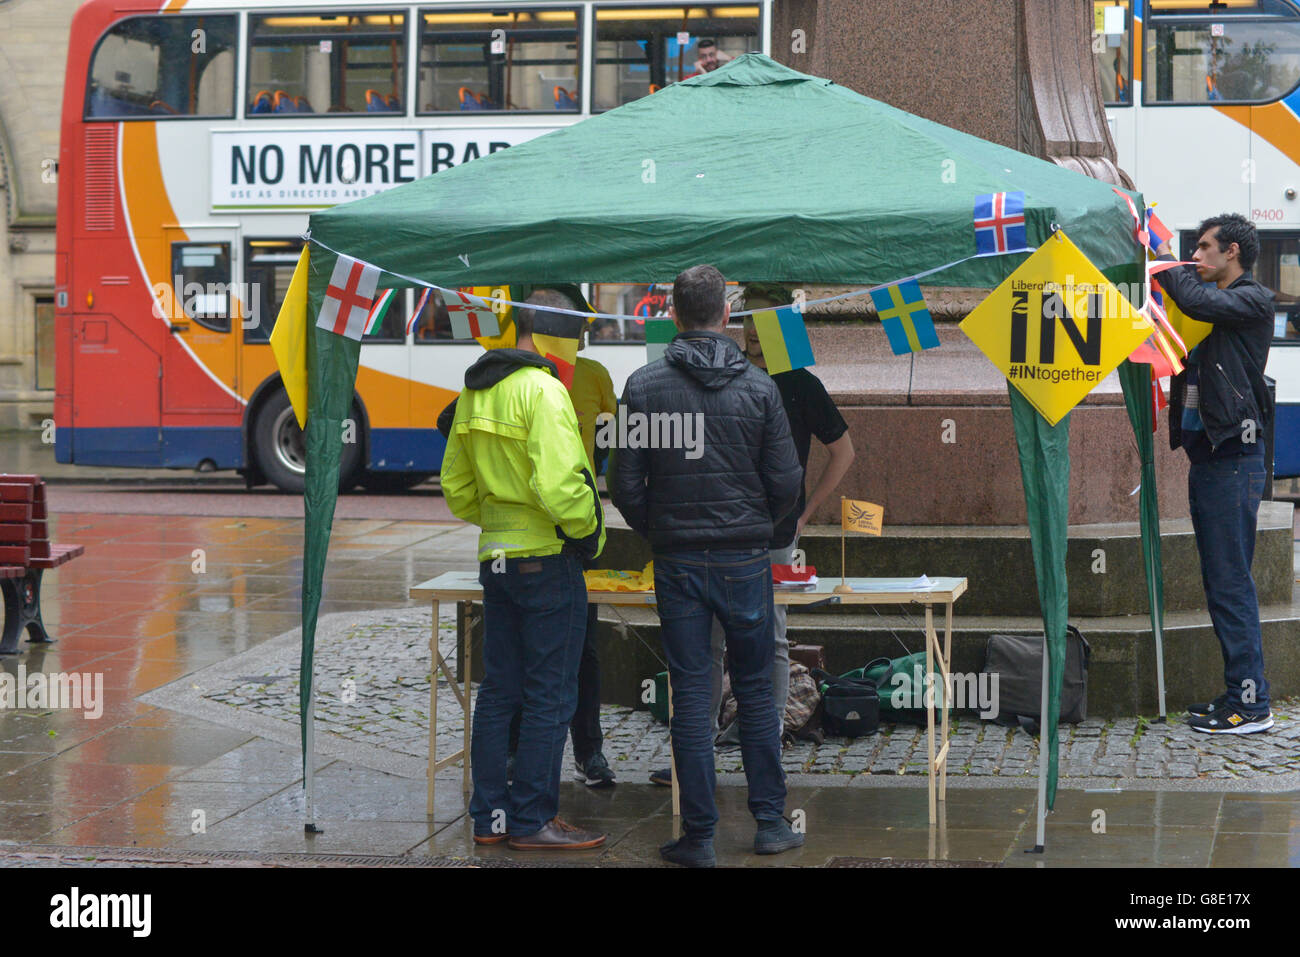 Manchester, UK. 28th June, 2016. People erecting a Liberal Democrat stall at the 'Undo Brexit' demonstration on Stock Photo